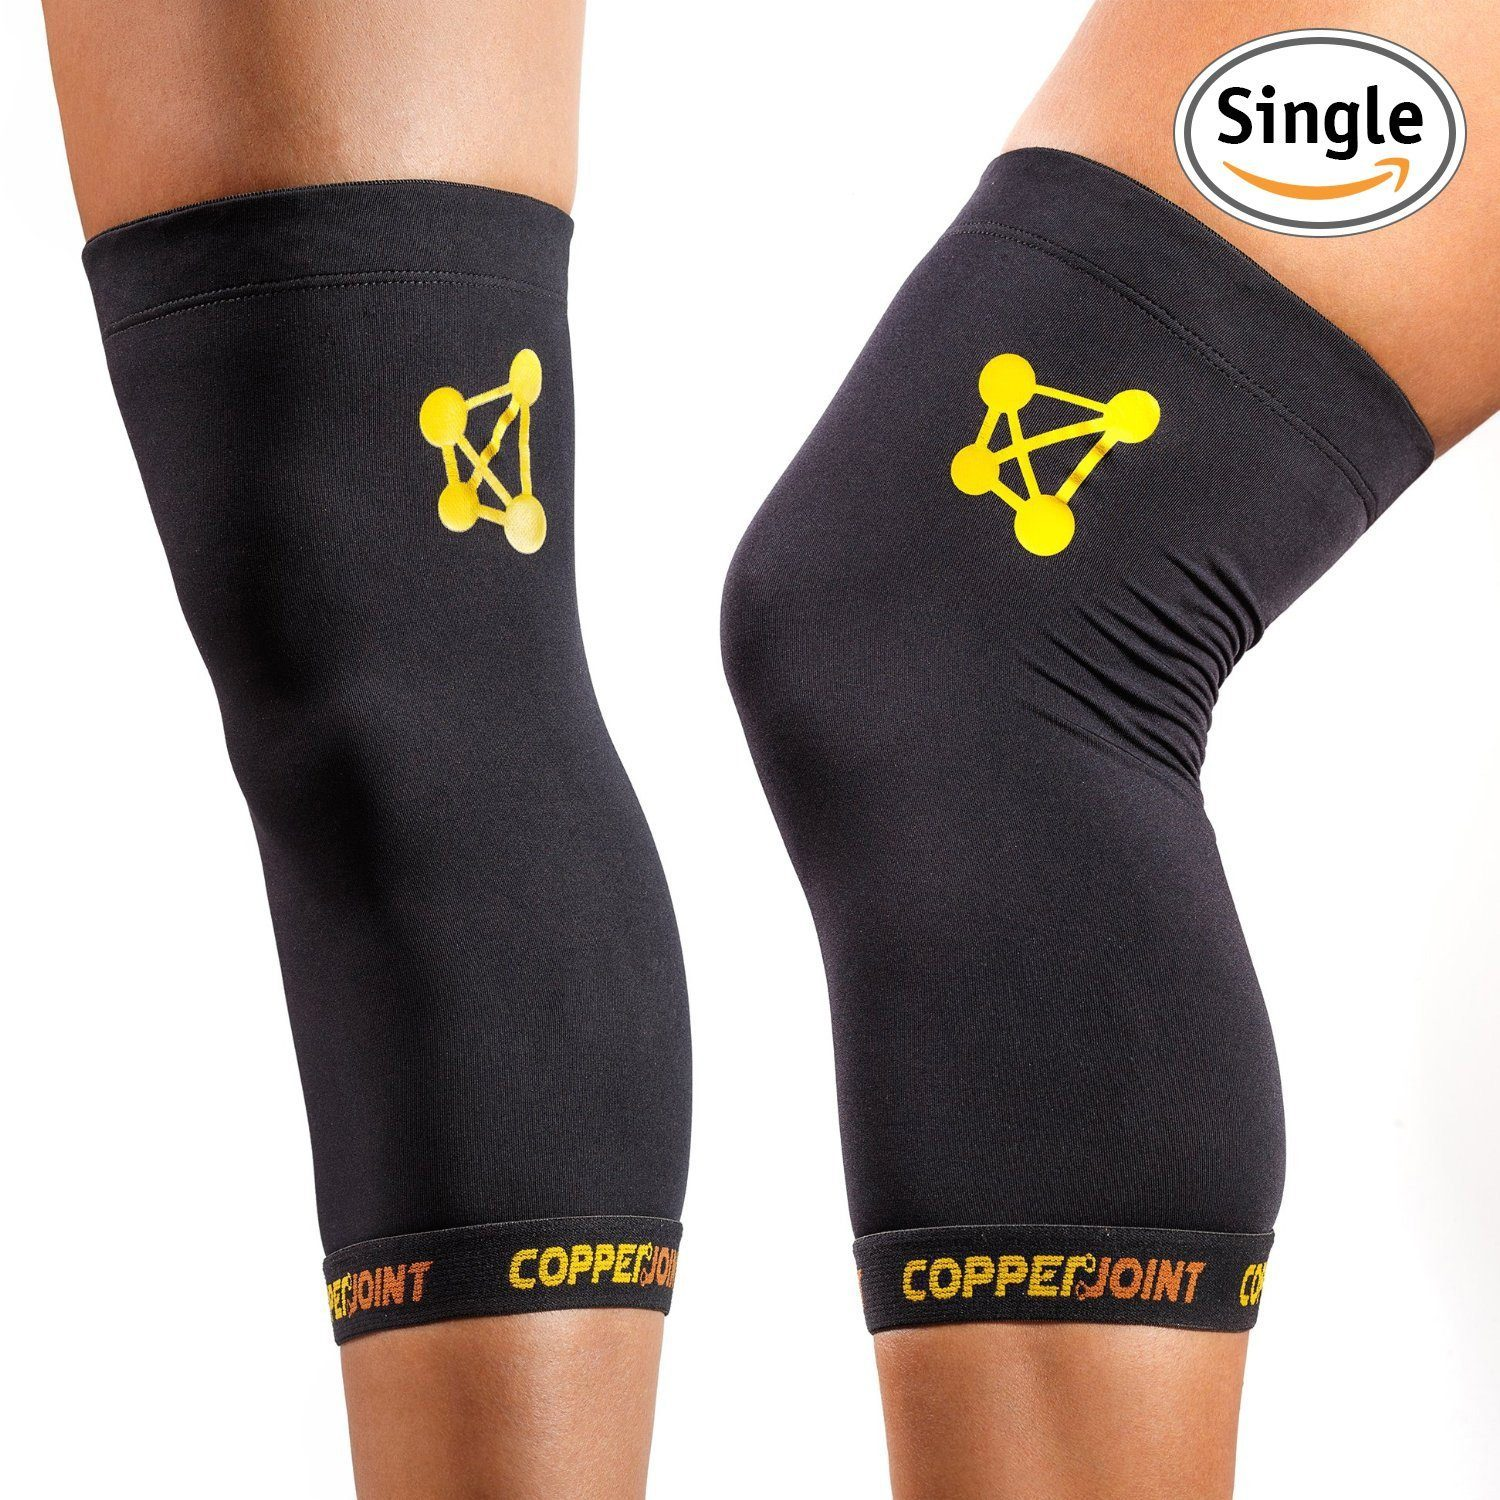 Best Knee Brace for Running - CopperJoint Copper Knee Sleeve